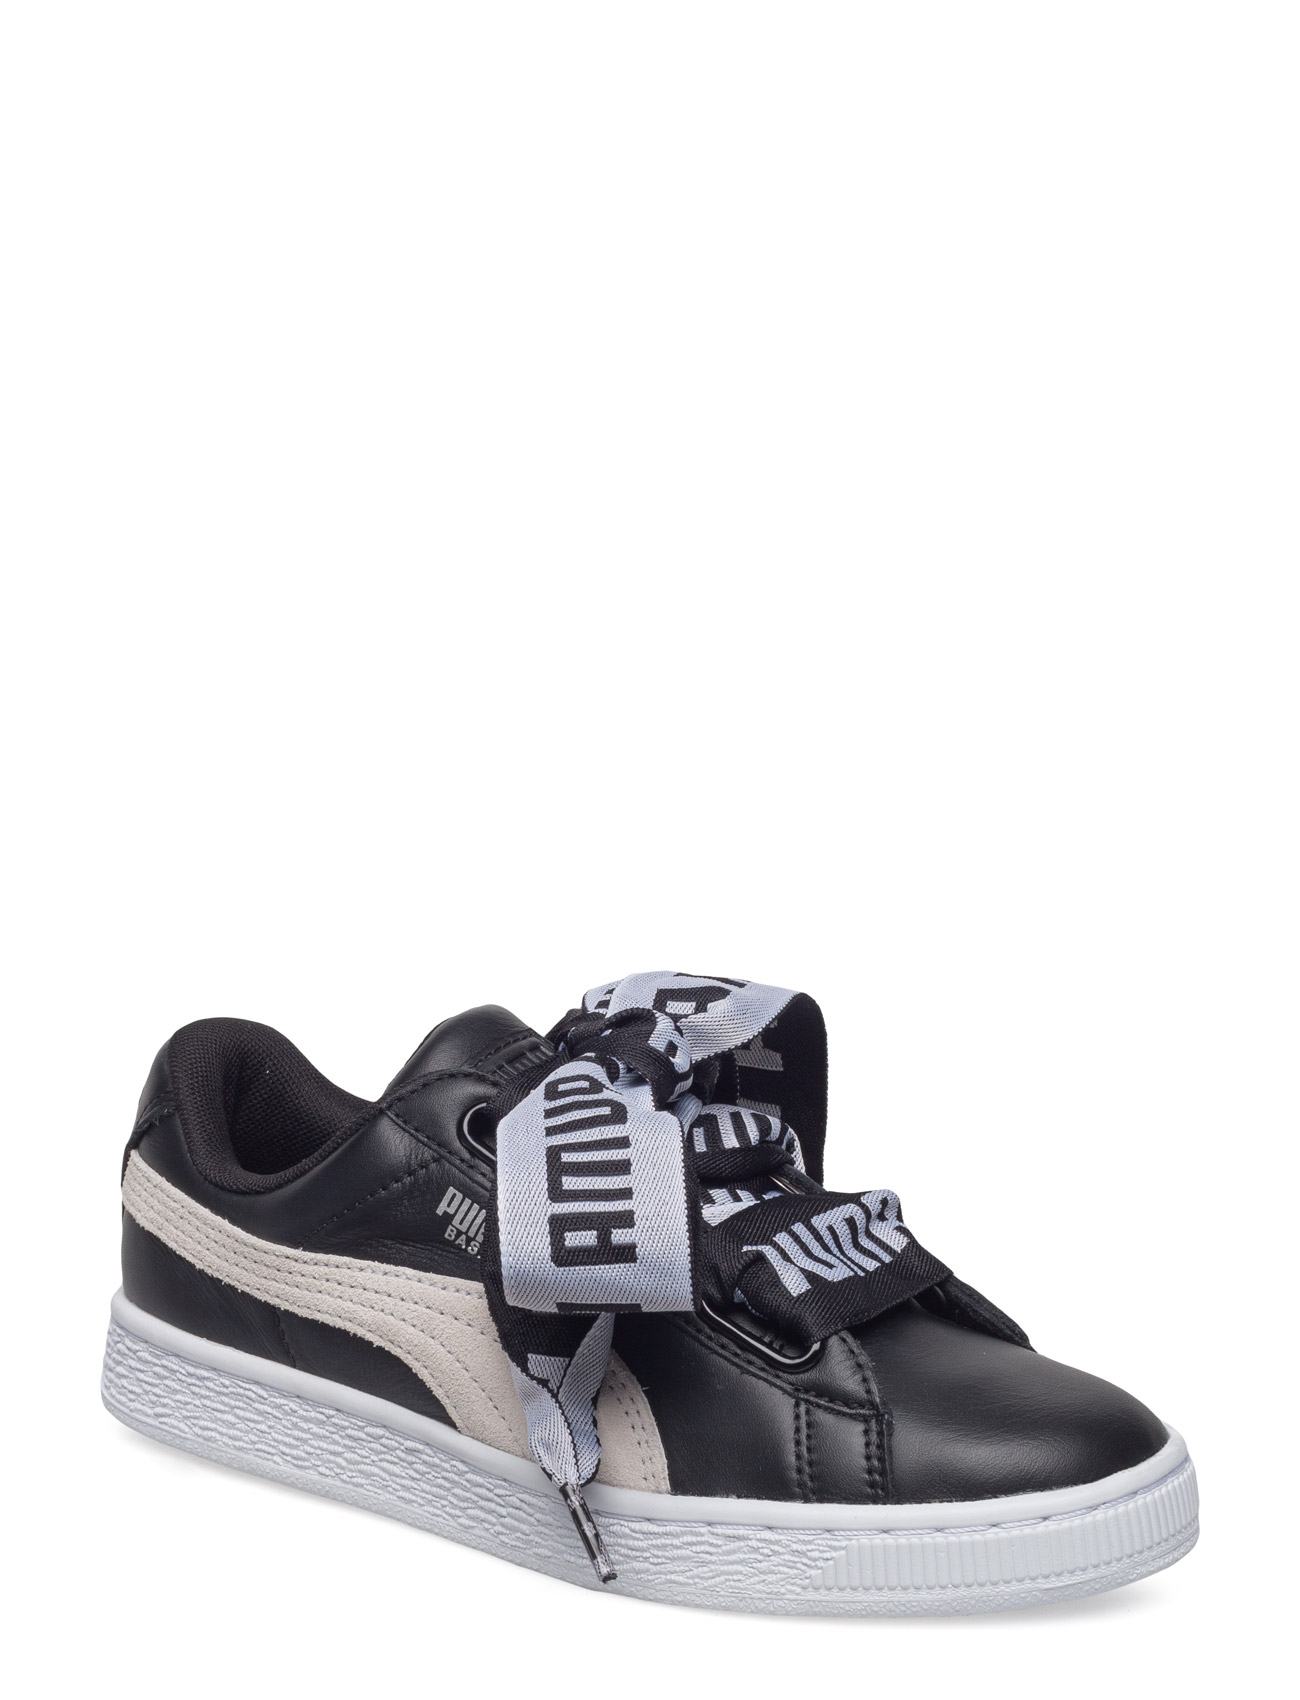 7774c6e38be0 PUMA Basket Heart De Wn s (Puma Black-puma White)